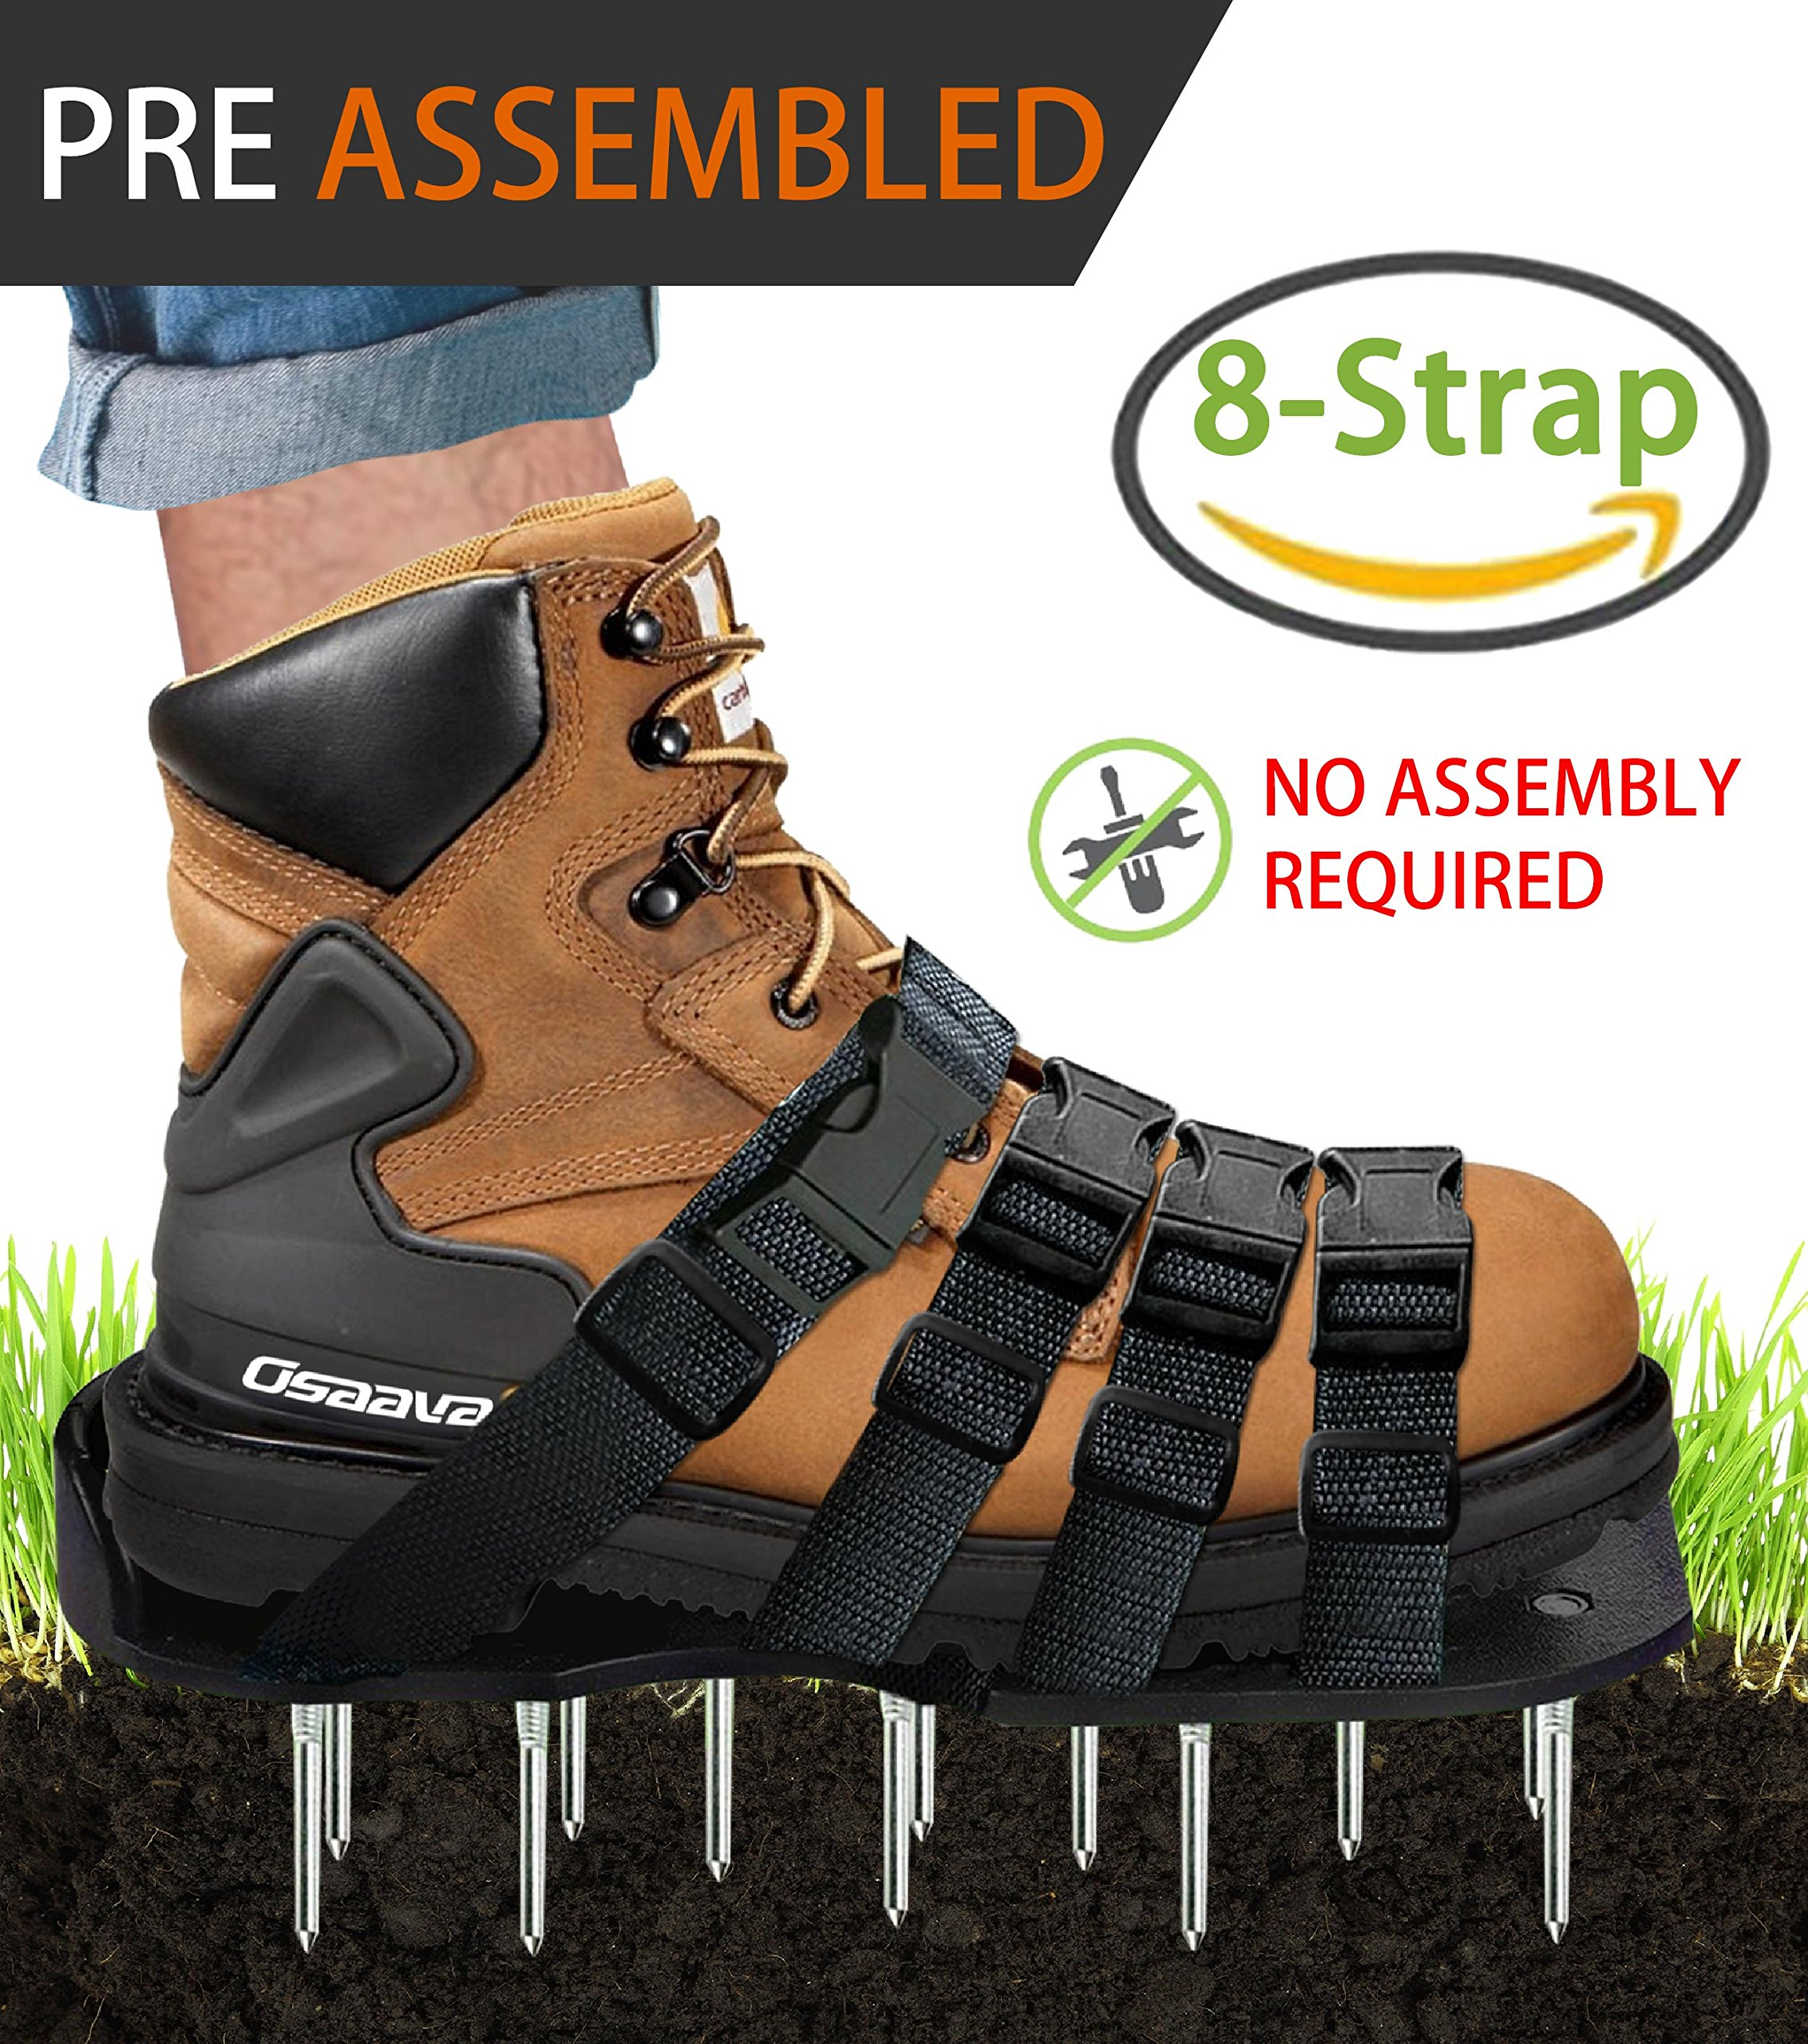 Osaava 47921 Lawn Aerator Shoes, Full ASSEMBLED Spiked Aerating Lawn Sandals With Adjustable 4 straps for Aerating Your Lawn Greener and Healthier Garden or Yard - Sturdy Universal Size that Fits all